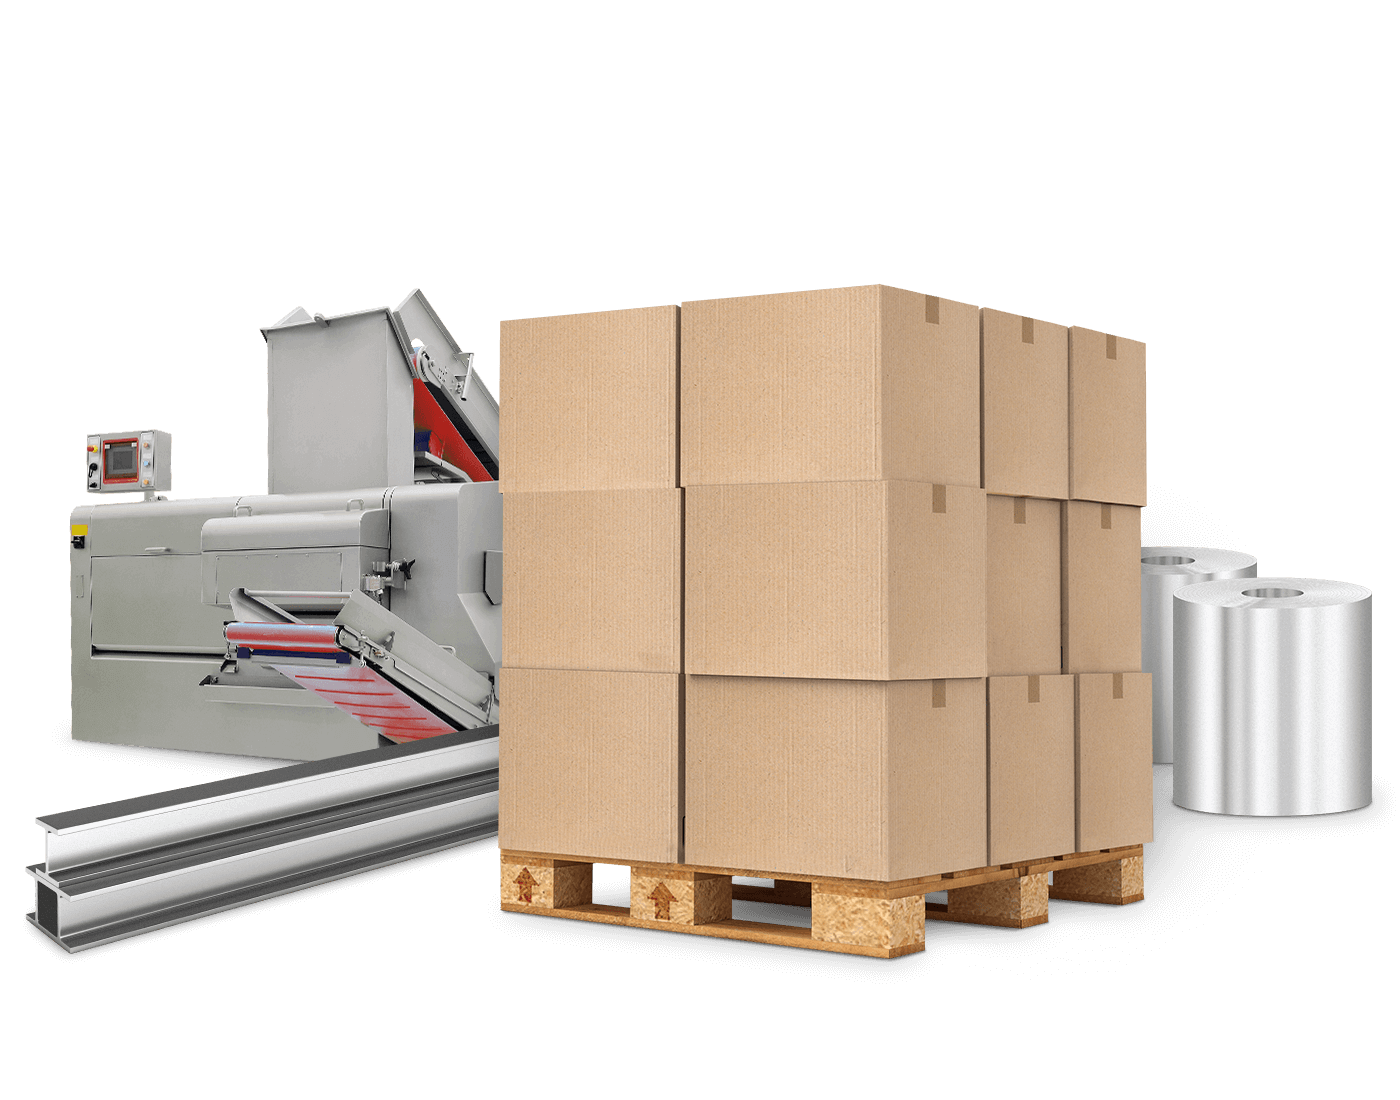 Shipping for industrial products